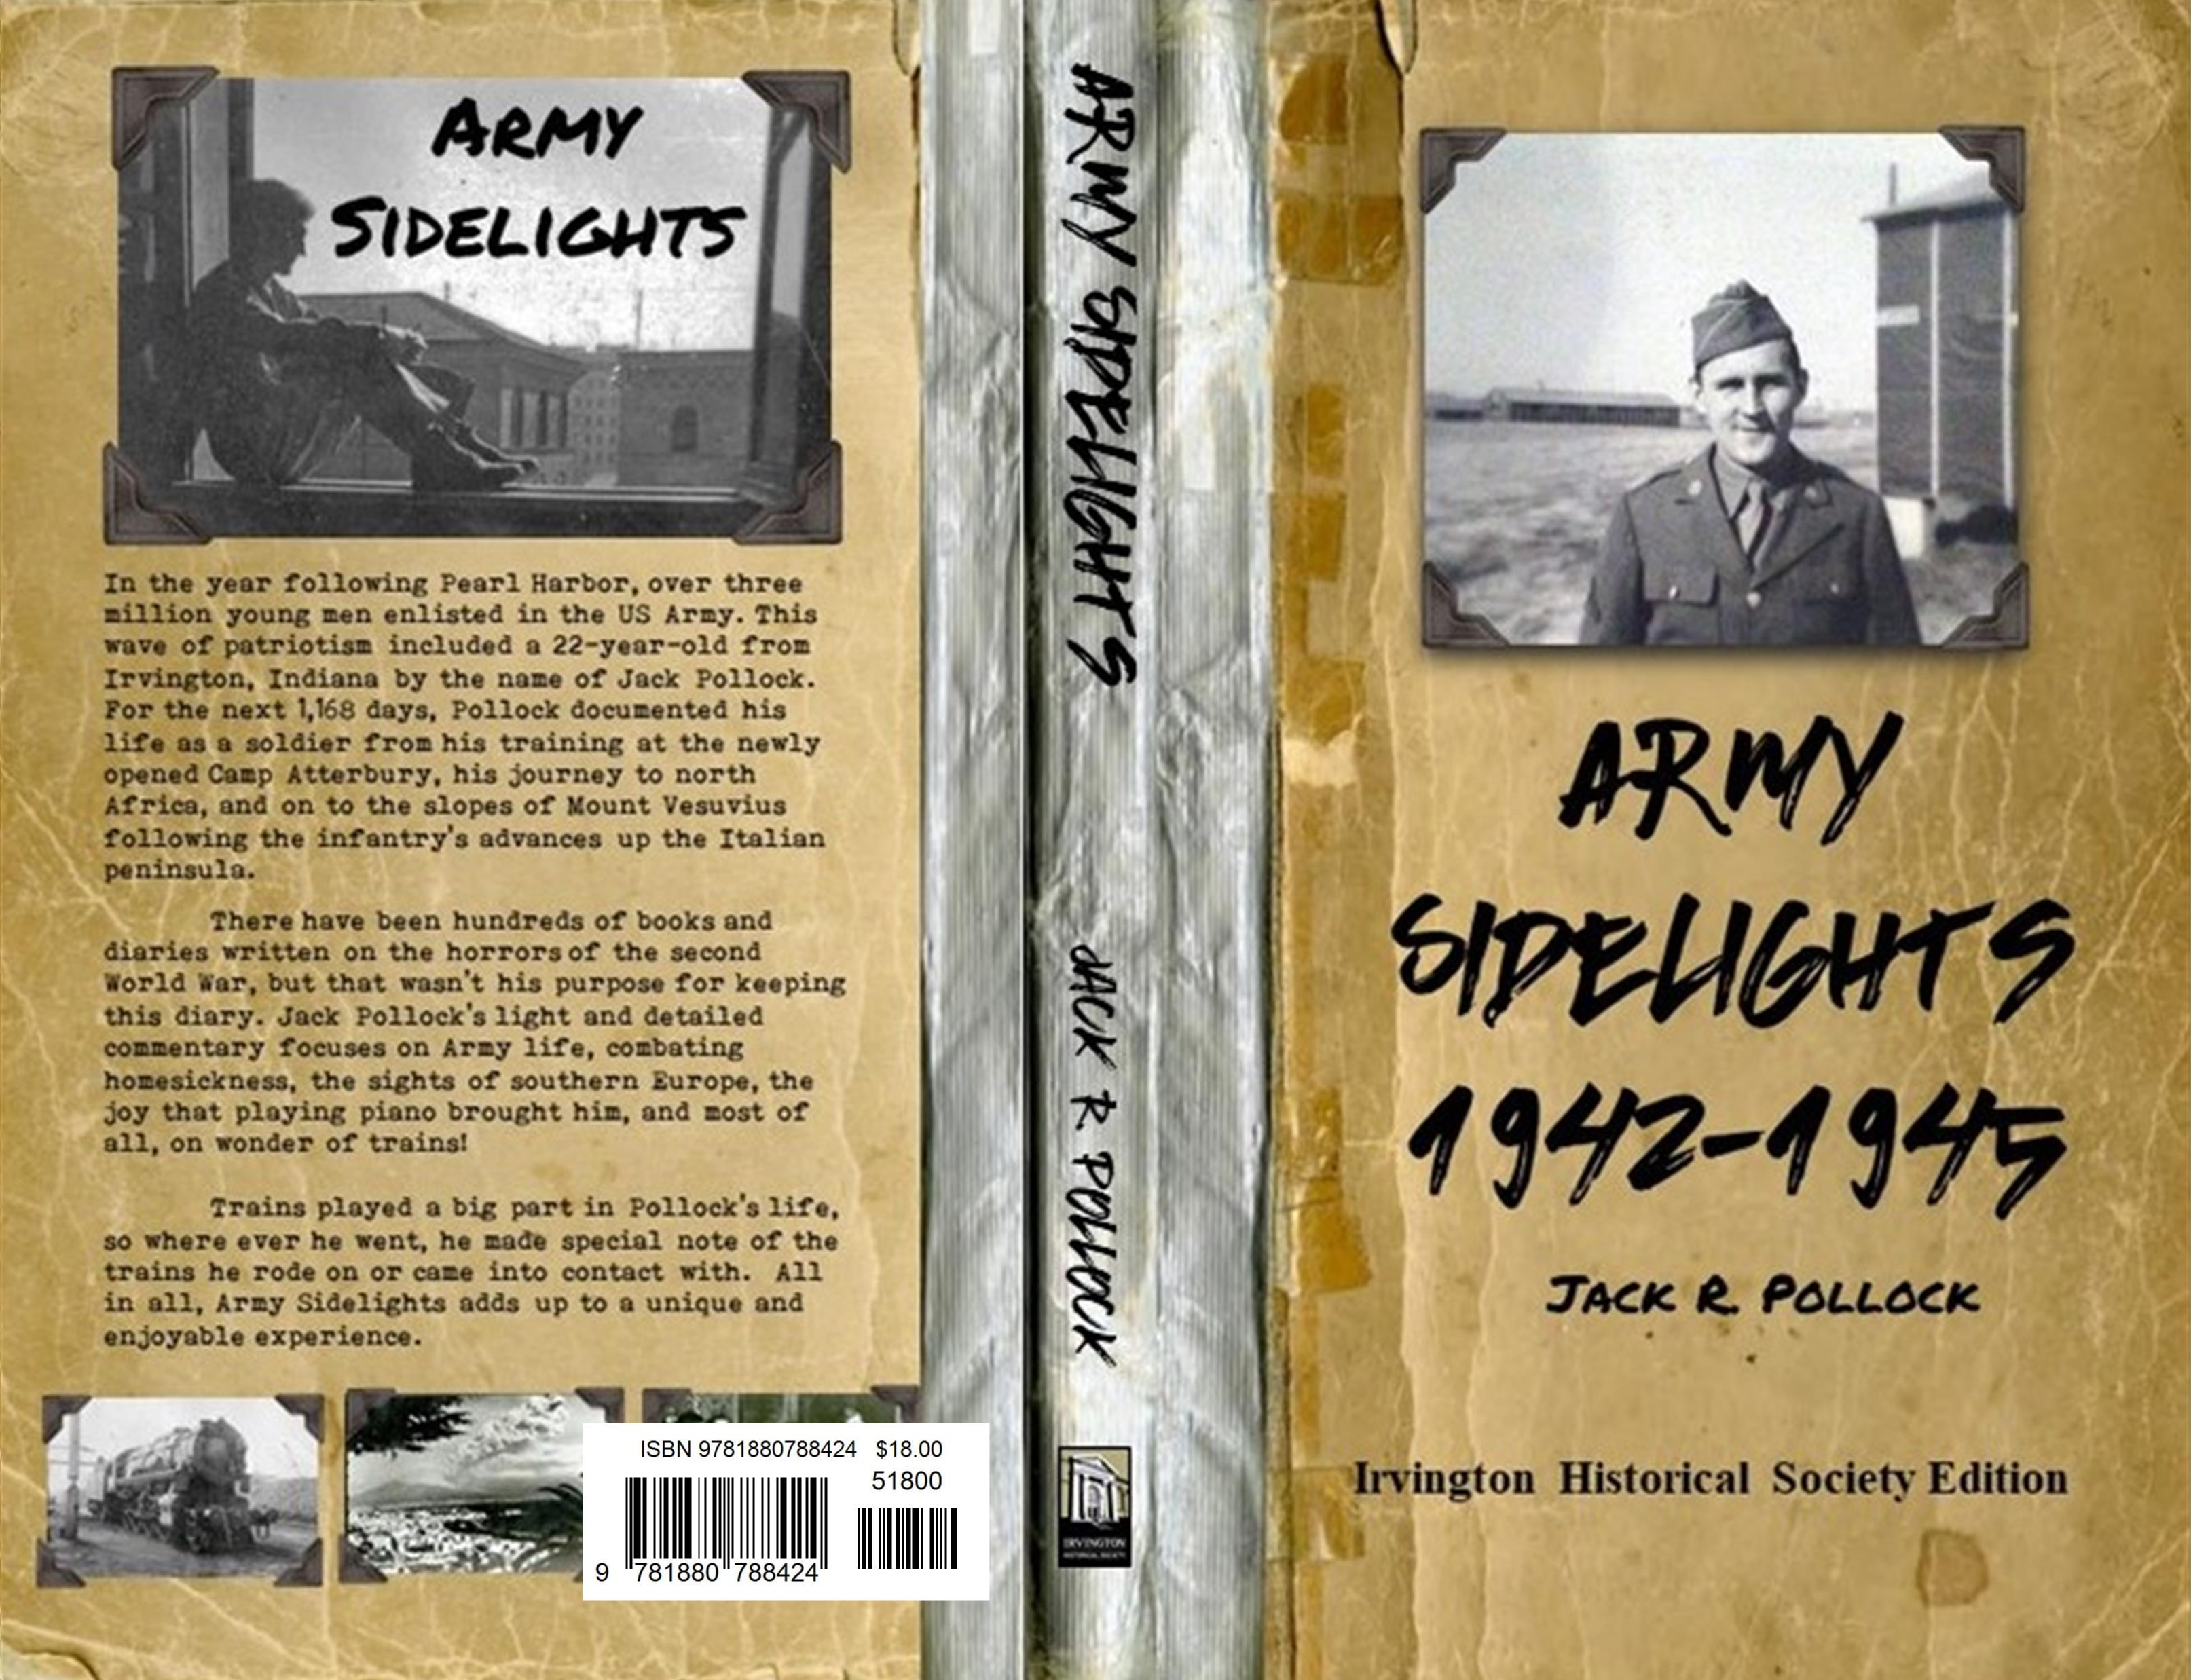 Army Sidelights cover image